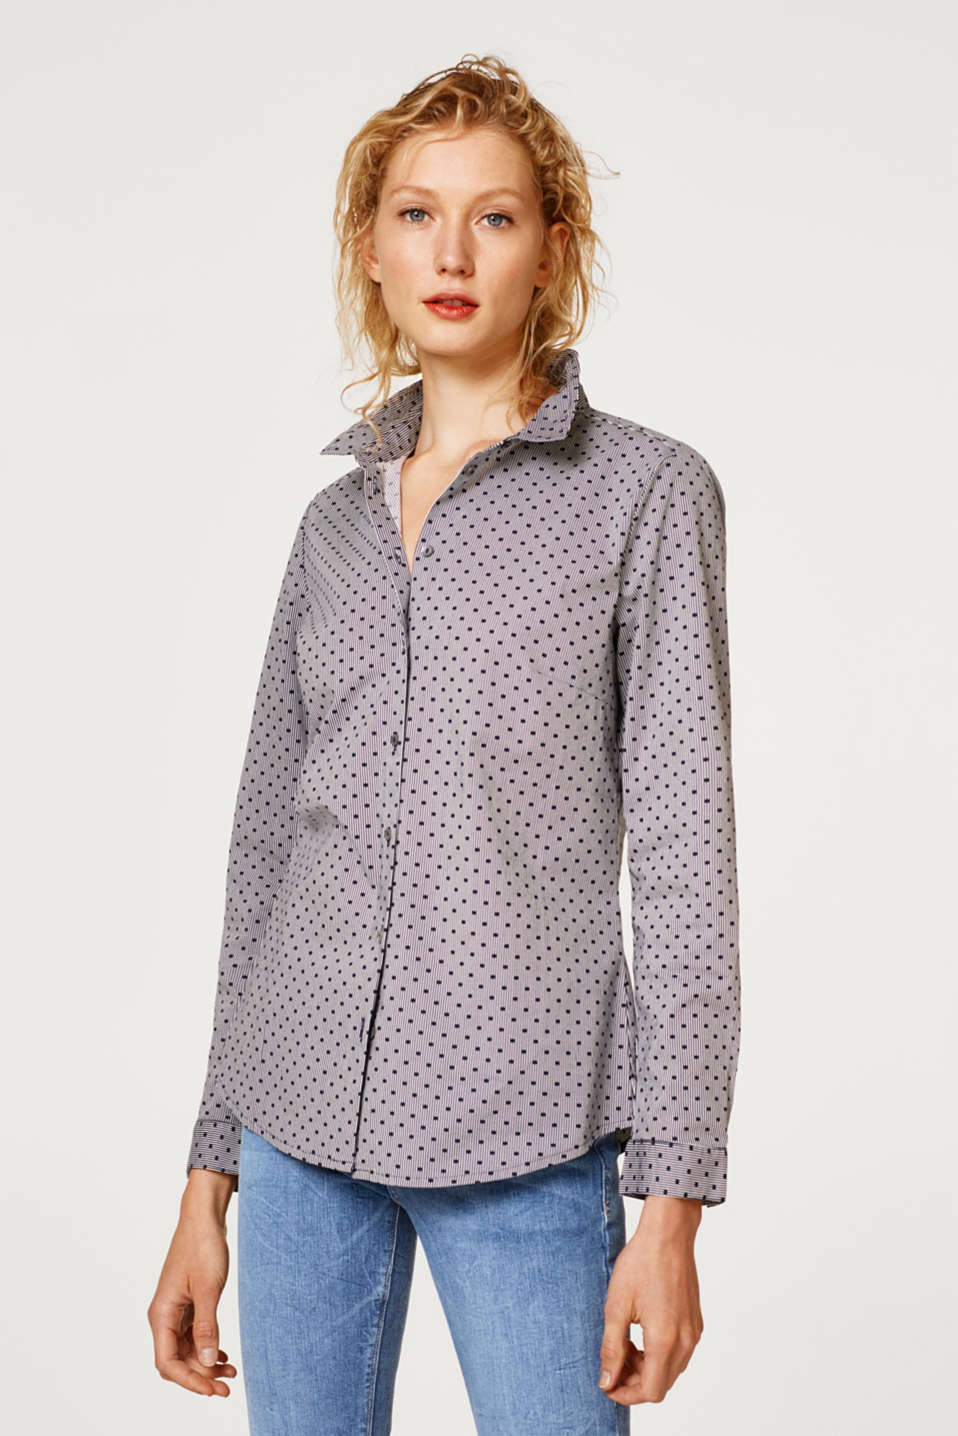 Esprit - Shirt blouse with stripes and polka dots